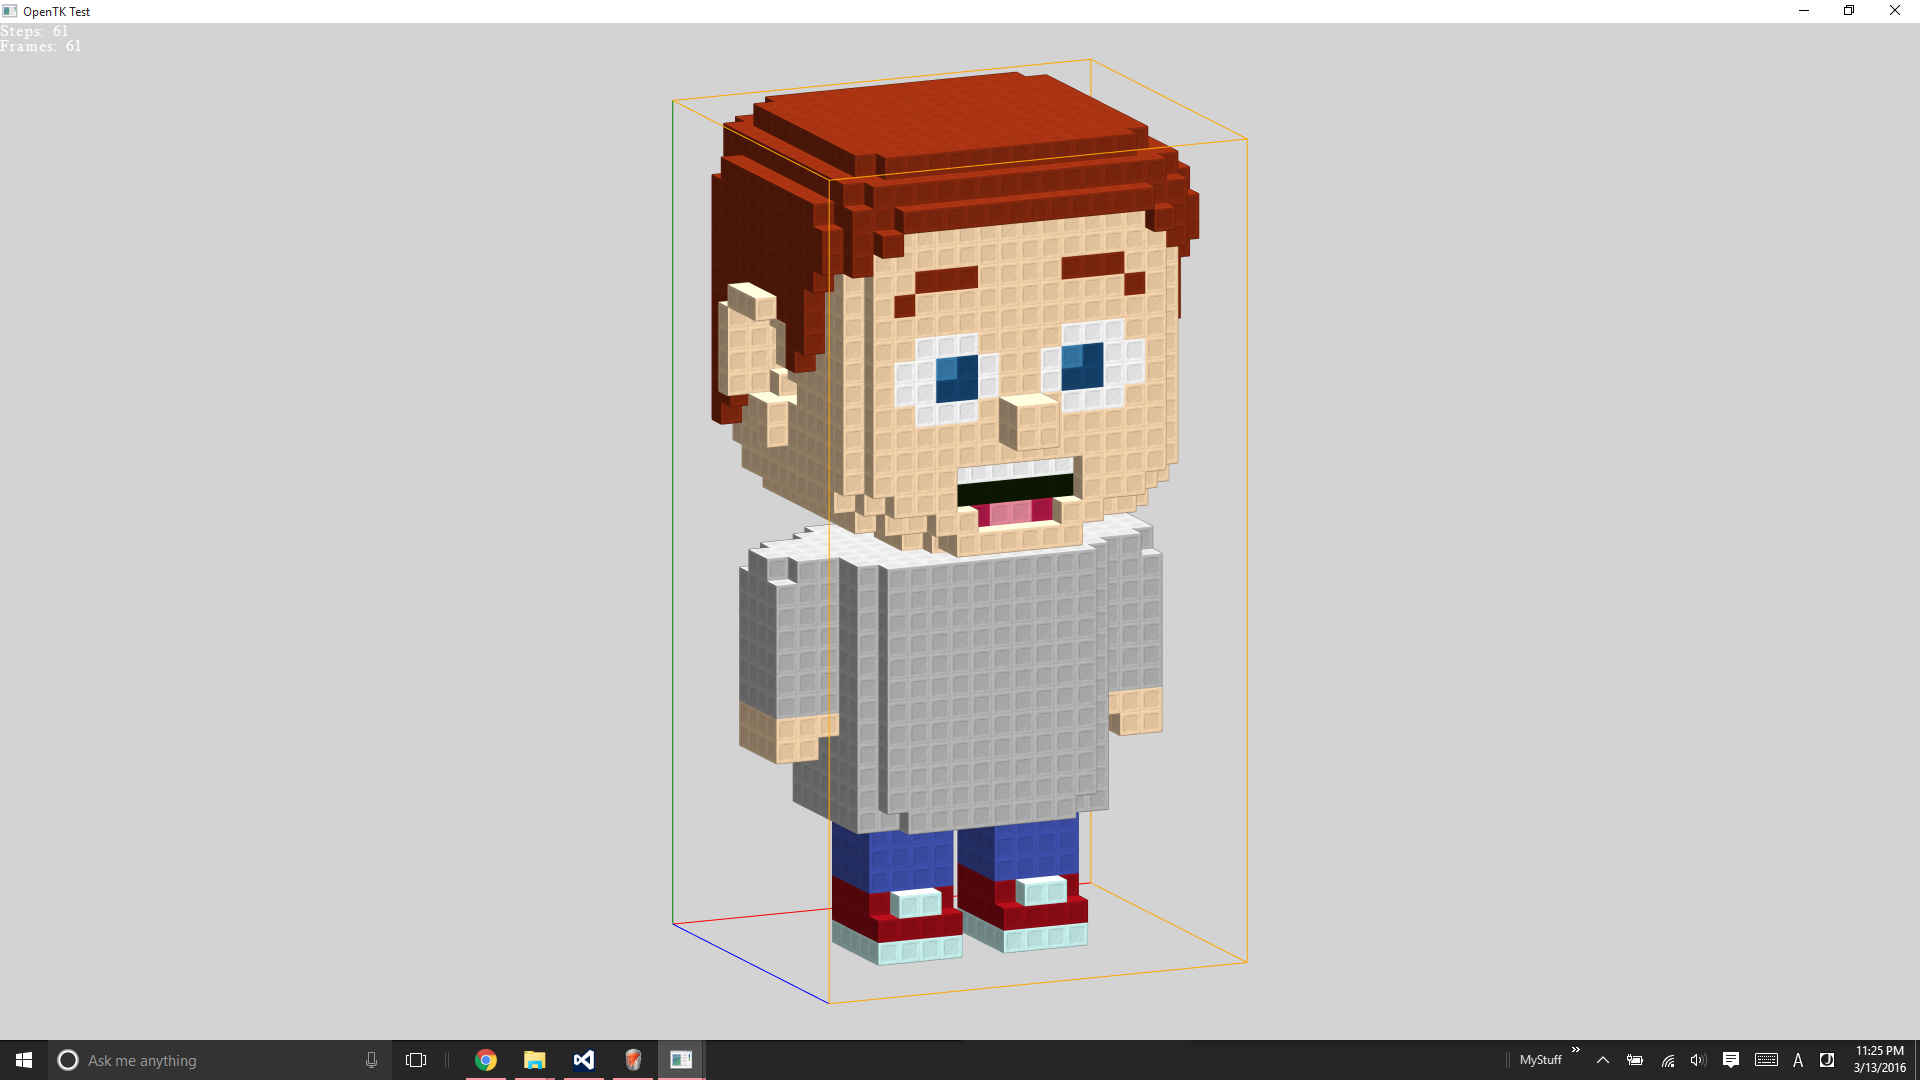 With voxels working I started working on getting some voxel characters animated.